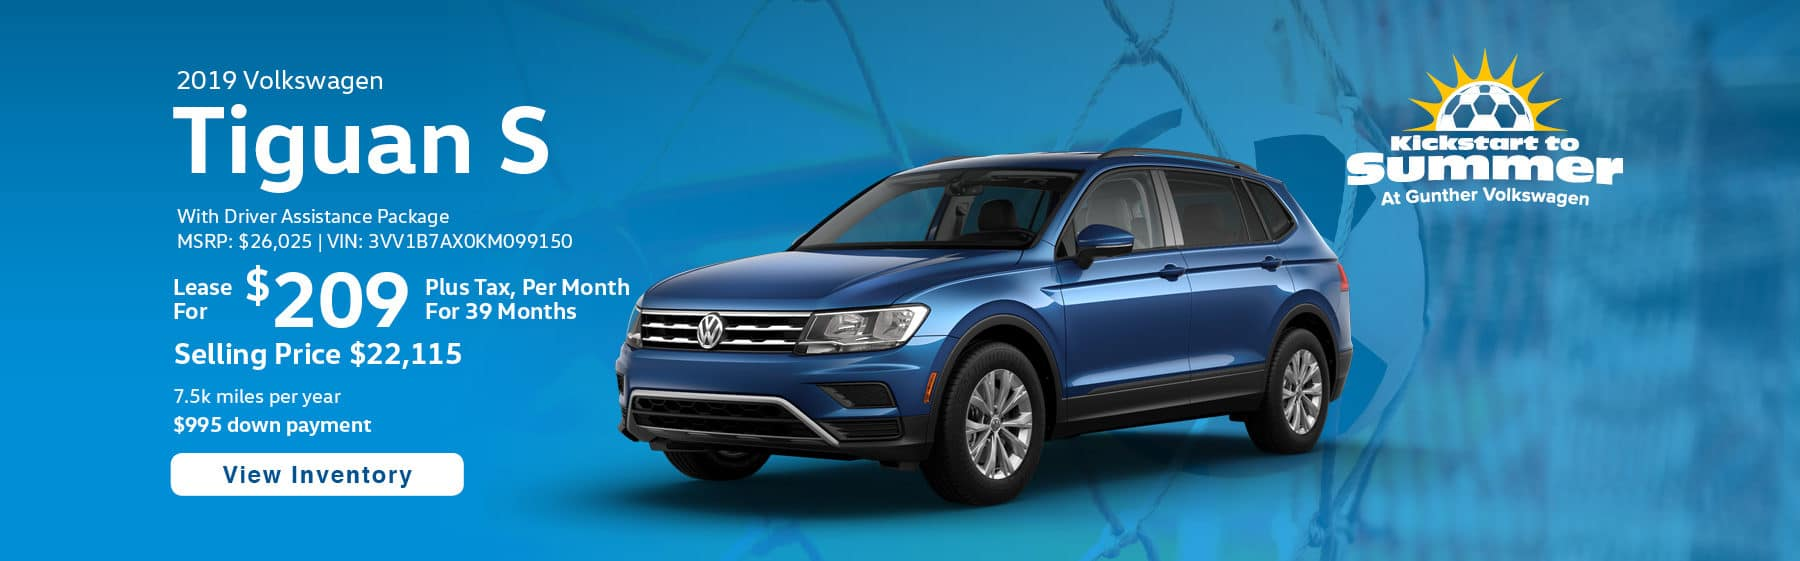 Lease the 2019 Tiguan S with Driver Assistance Pkg for $209 per month, plus tax for 39 months.